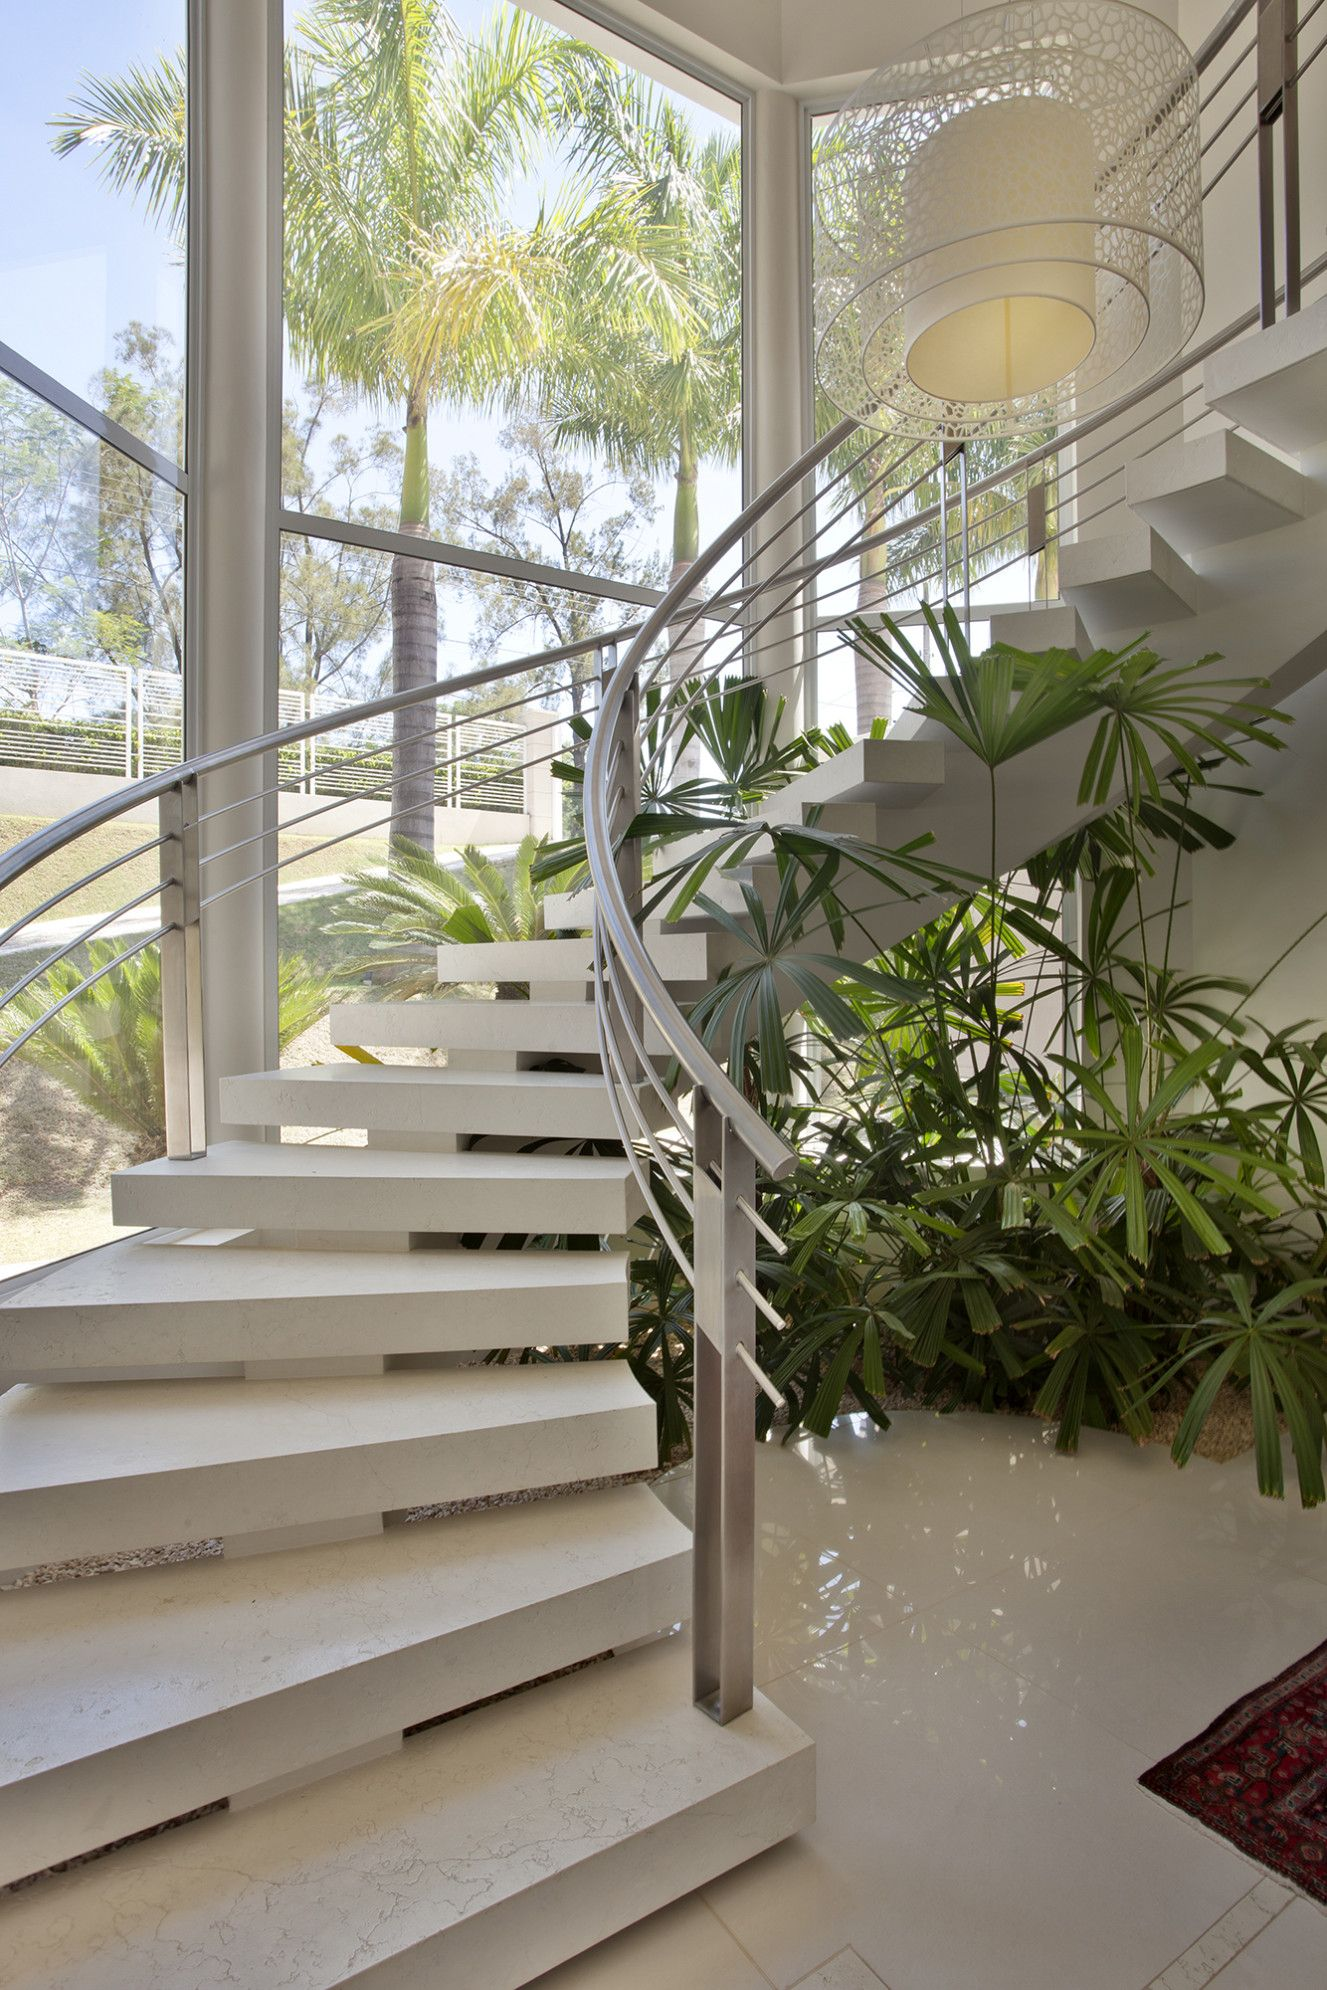 Escalera Hogar Pin De Kay Mirshafiee En Stairs Pinterest Escaleras